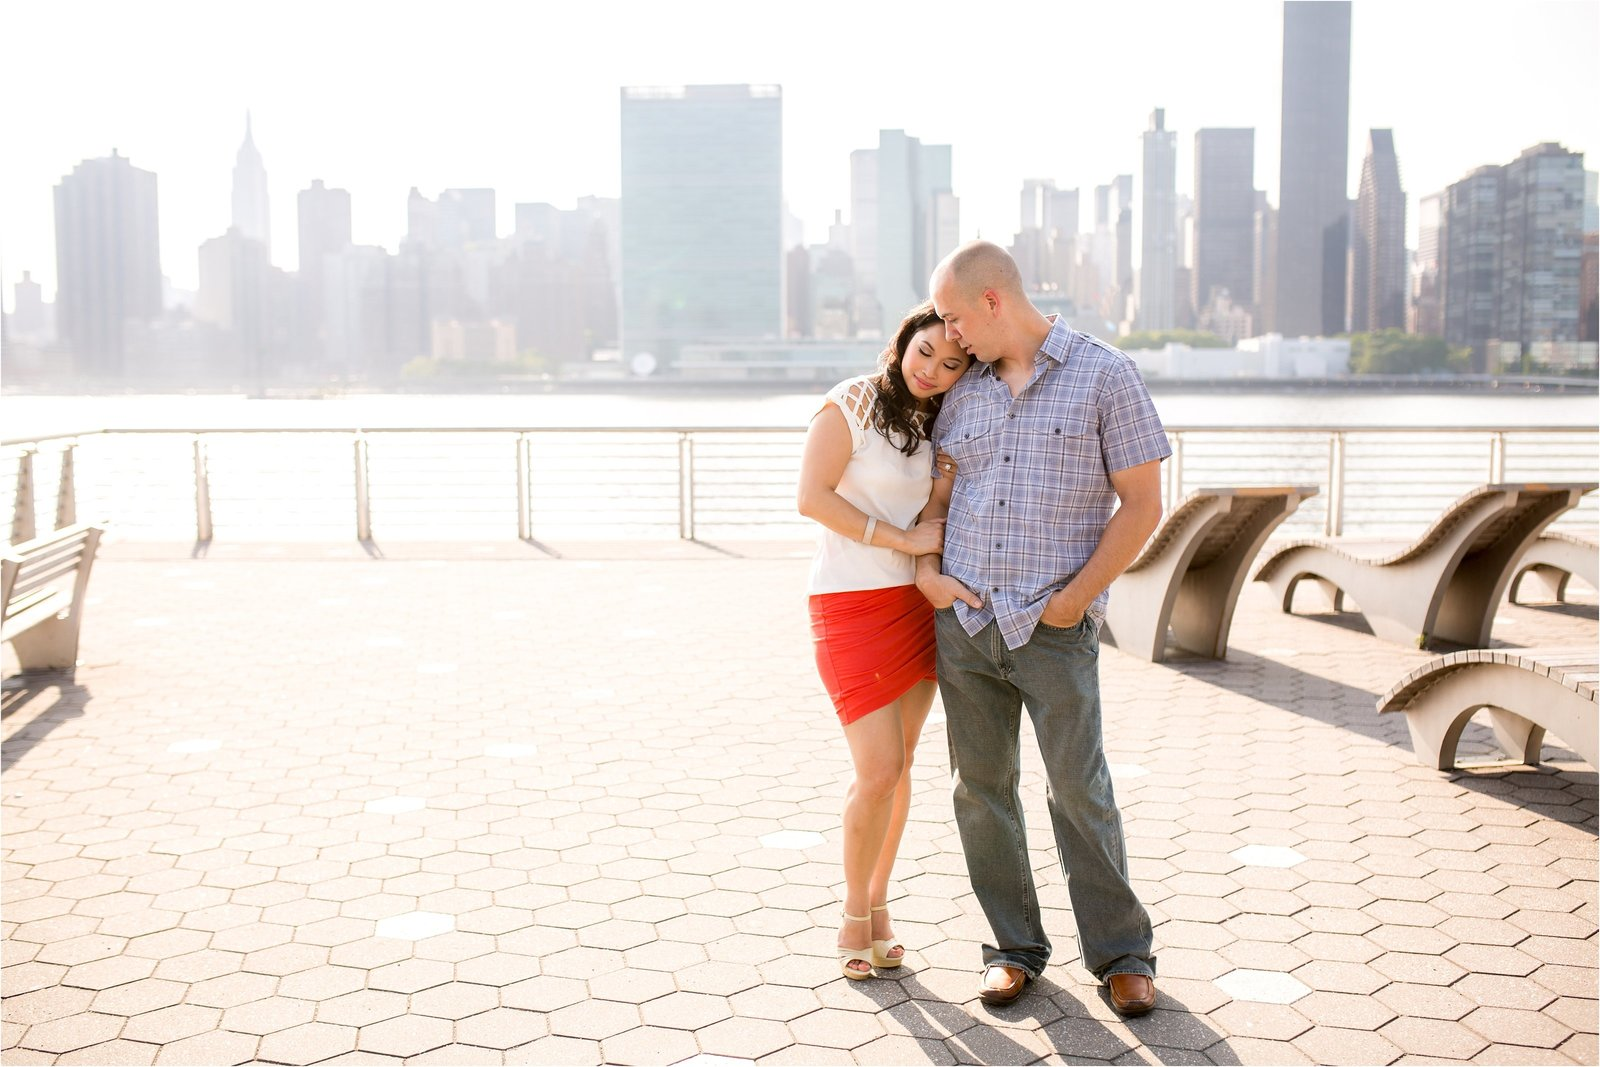 nj-wedding-photographers-idalia-photography-engagement-showcase-009